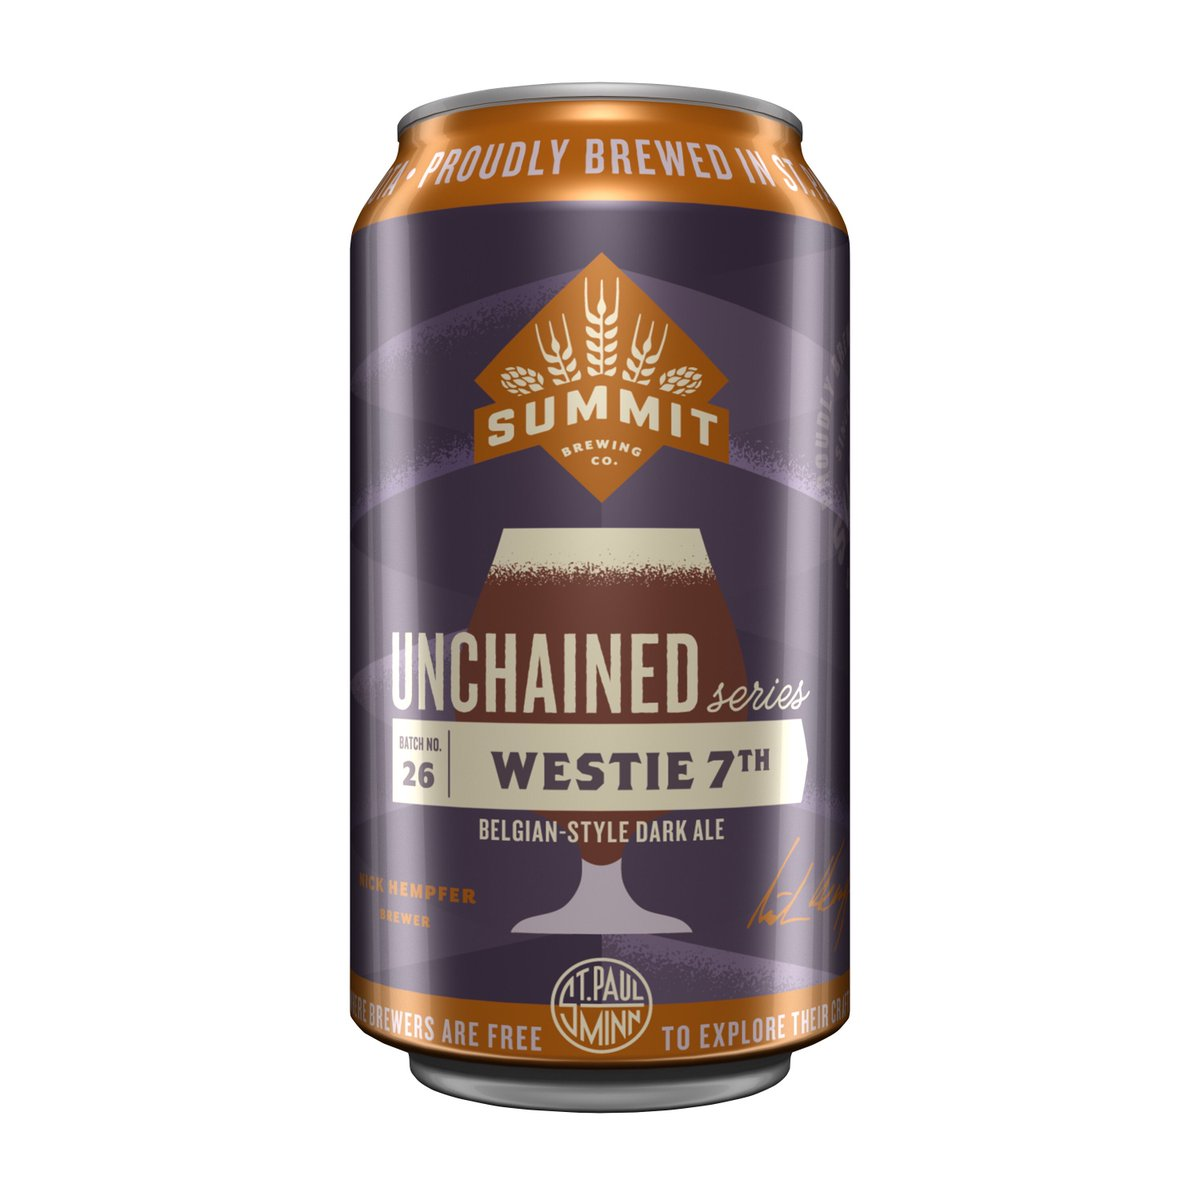 Summit Unchained 26: Westie 7th is a Belgian Dark Ale made with powerful and mysterious Belgian candi syrup. https://t.co/QDpNDfnKsA https://t.co/uJG58A2fxk